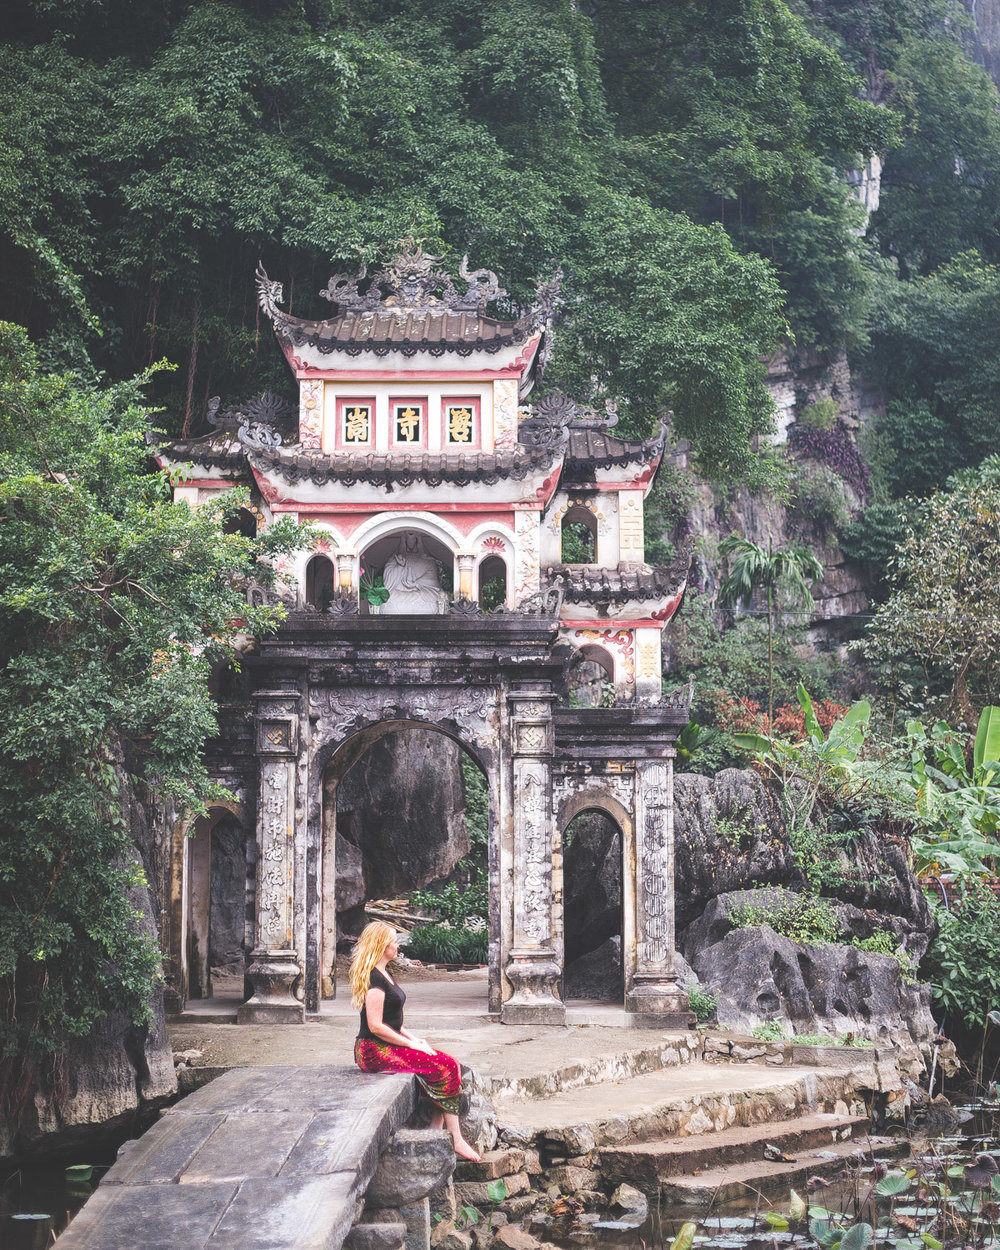 The entrance to Bich Dong Pagoda in Ninh Binh